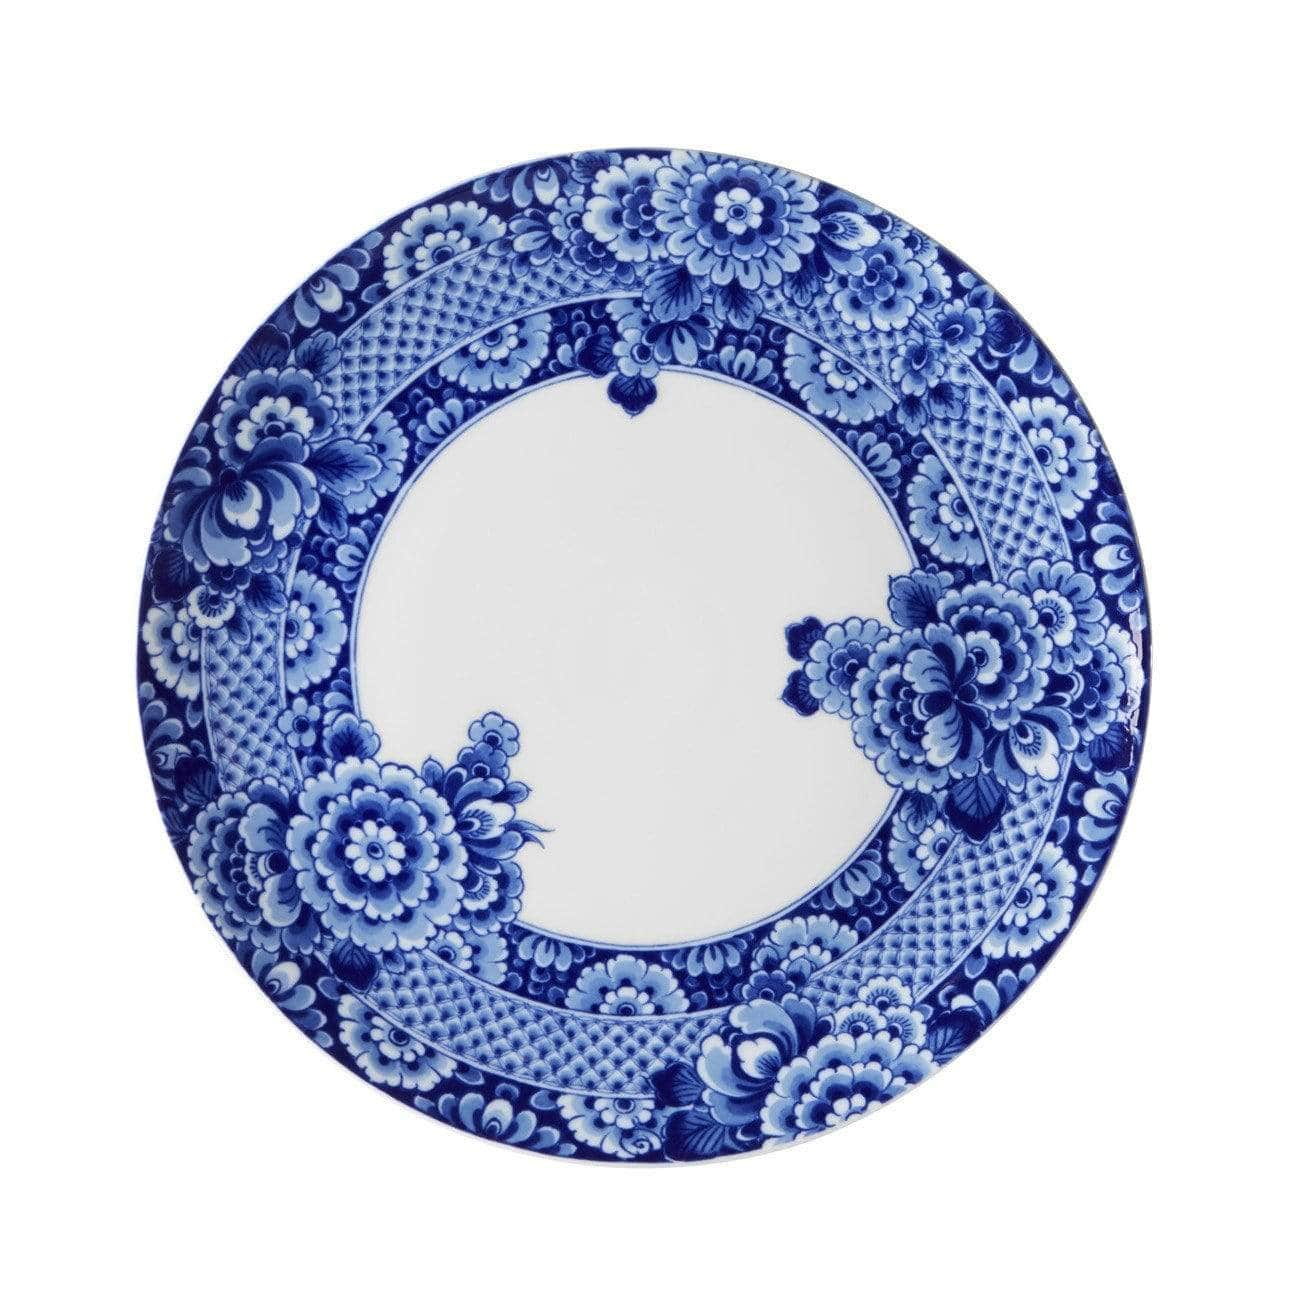 Image of Marcel Wanders Blue Ming Charger